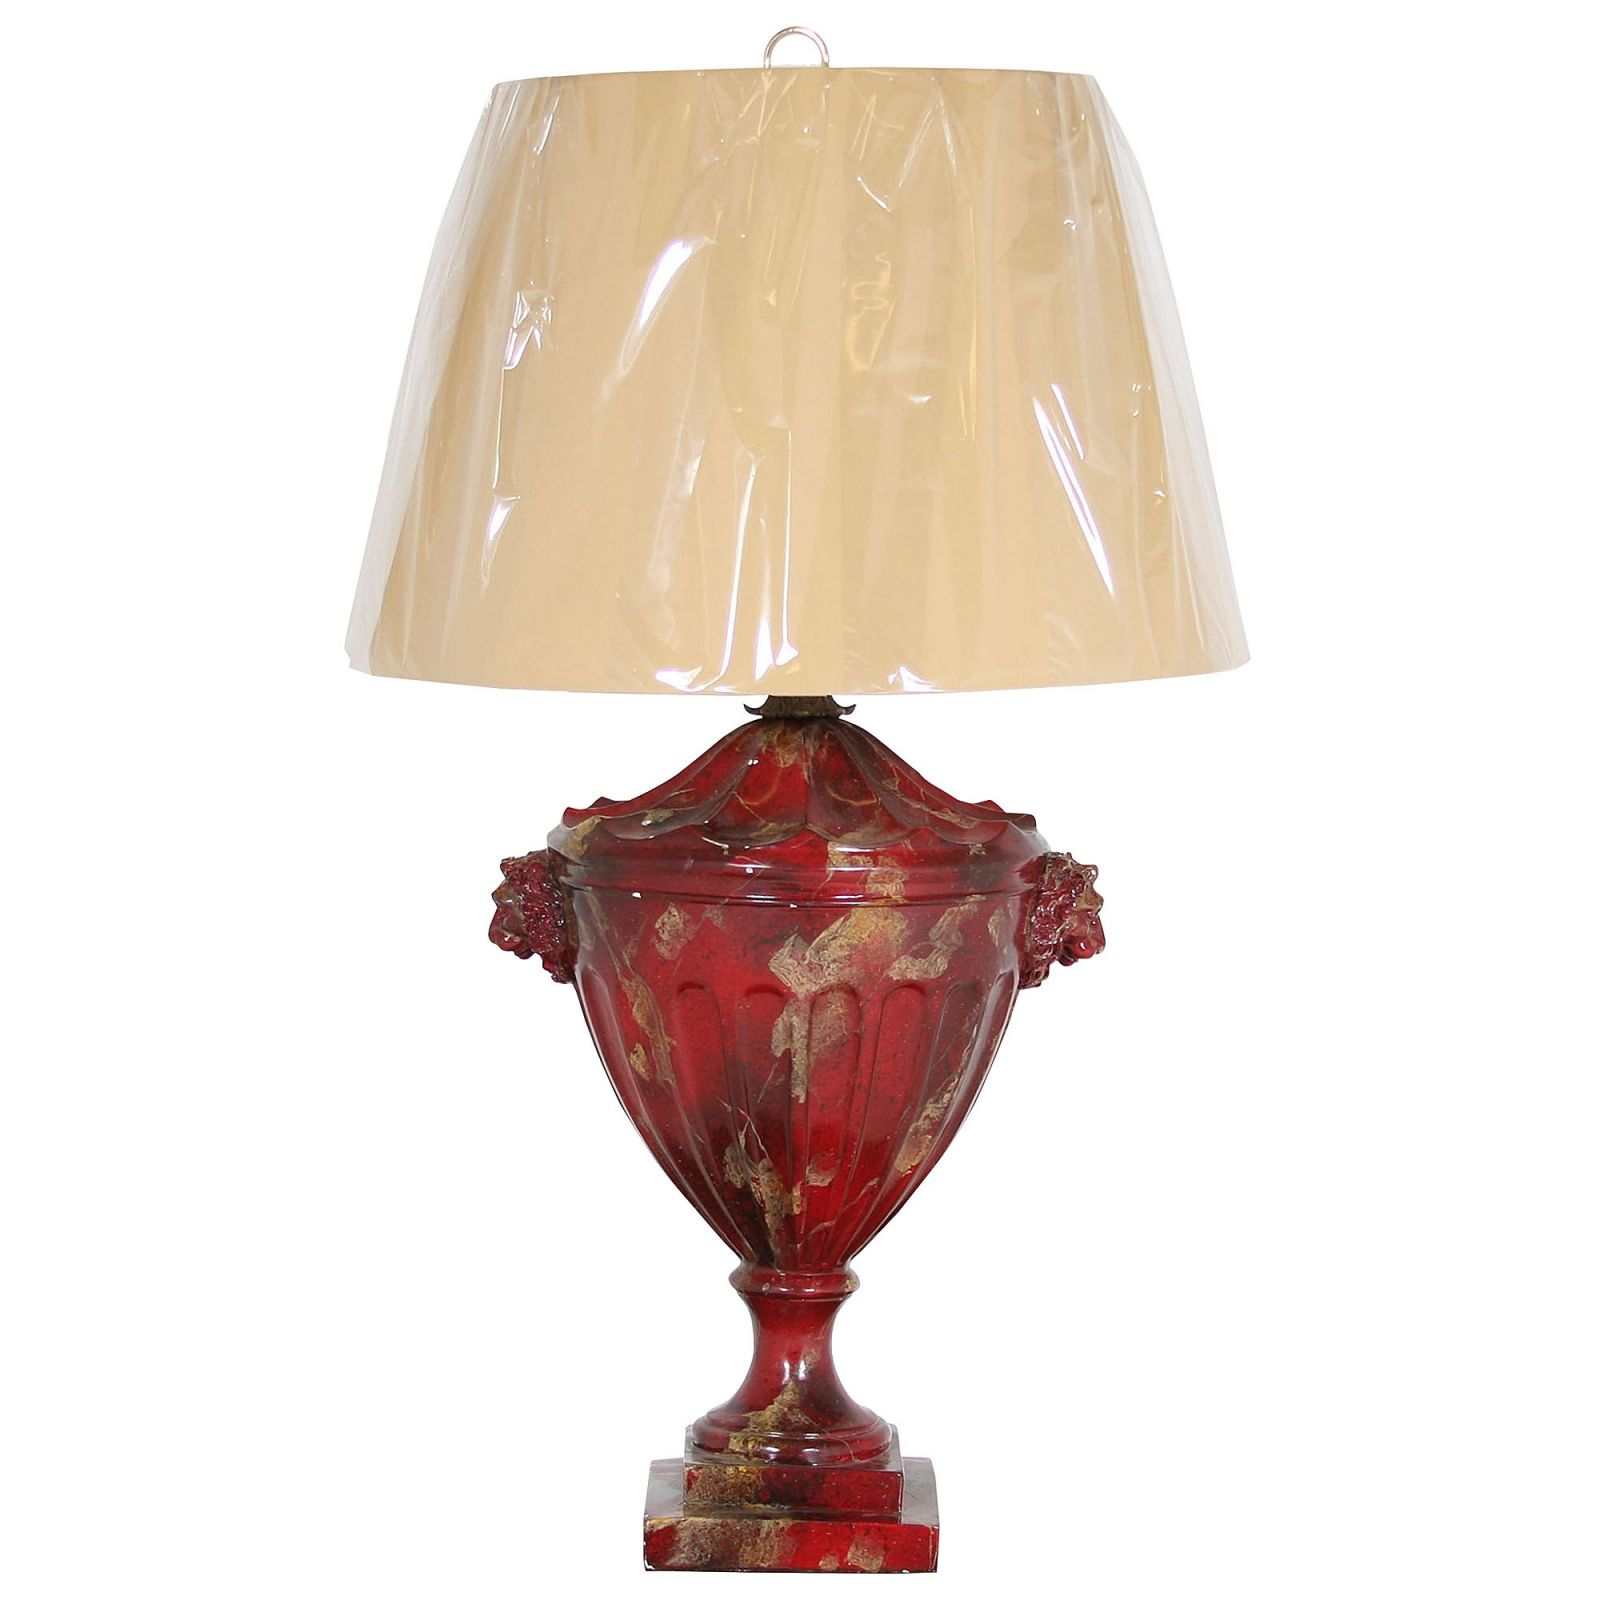 Faux red marble urn table lamp